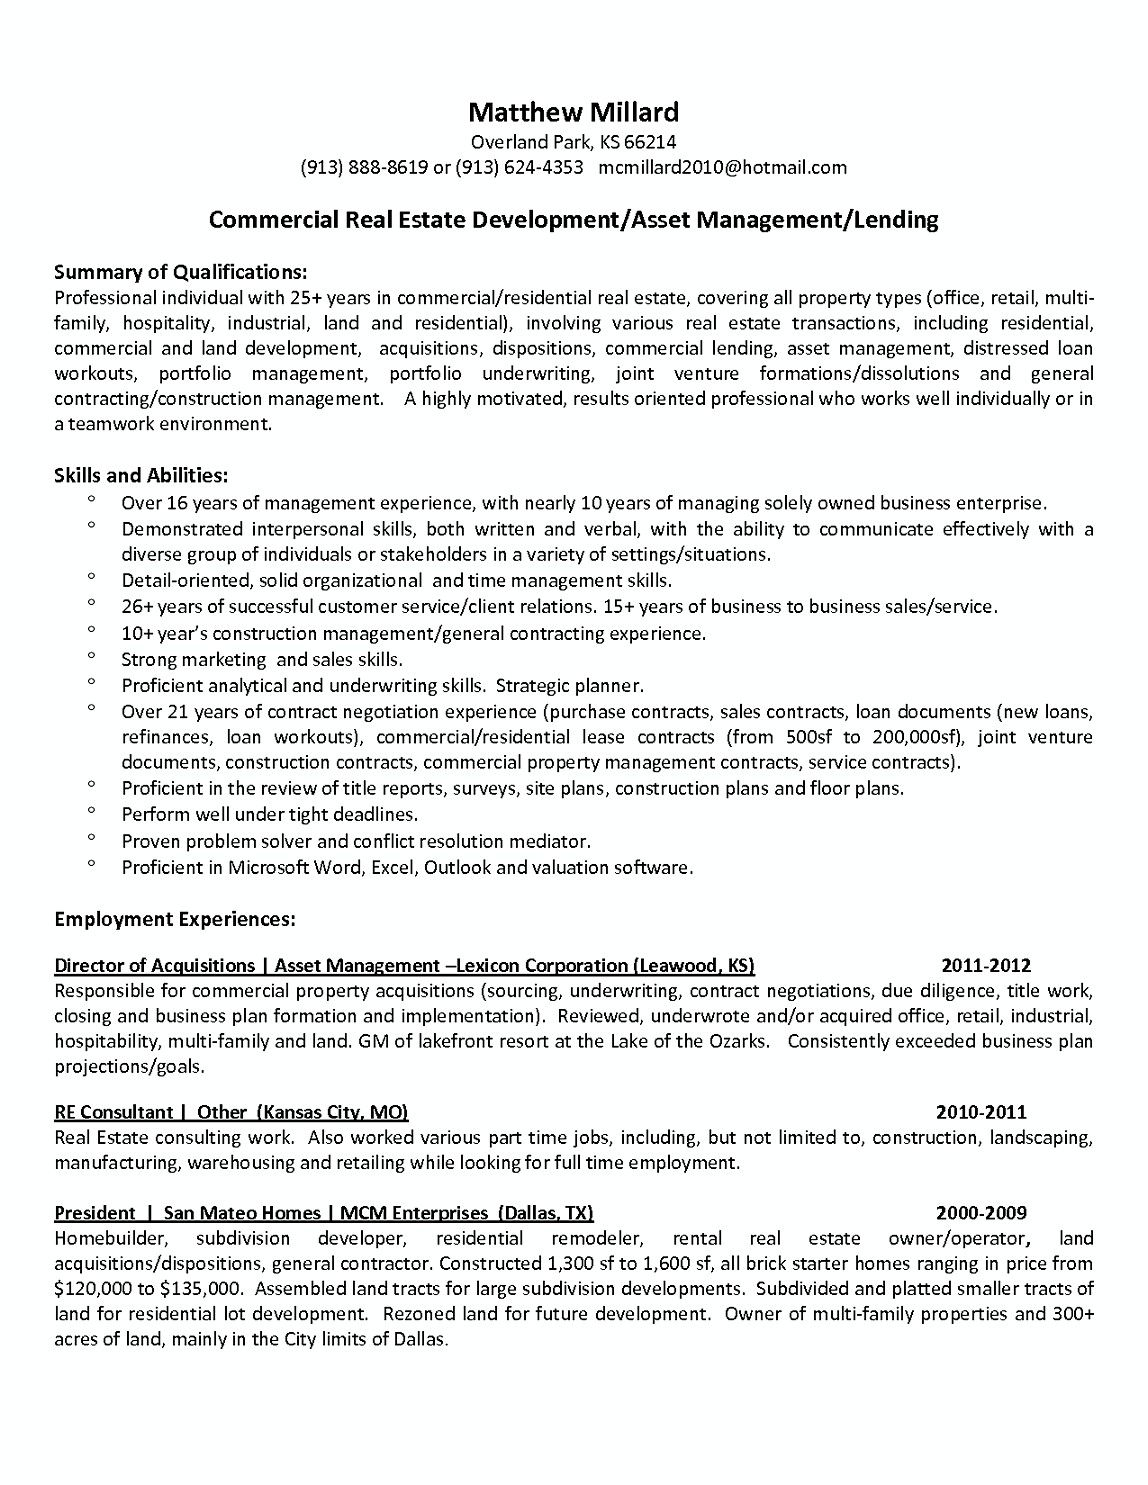 Commercial Property Manager Resume Commercial Property Manager Resume Interested In Working In Prope Manager Resume Property Management Commercial Property